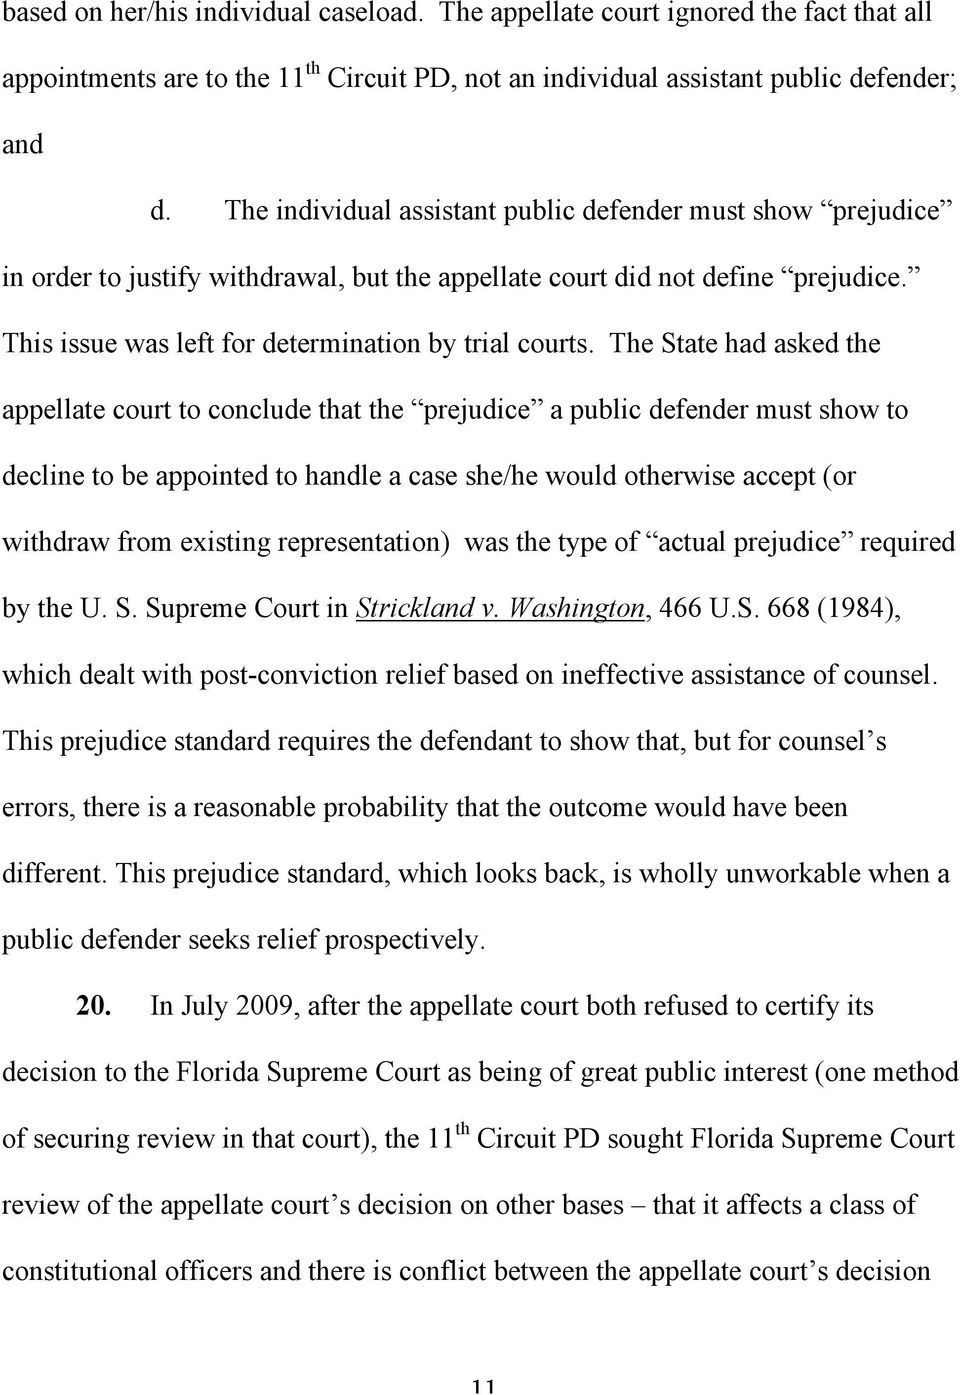 The State had asked the appellate court to conclude that the prejudice a public defender must show to decline to be appointed to handle a case she/he would otherwise accept (or withdraw from existing